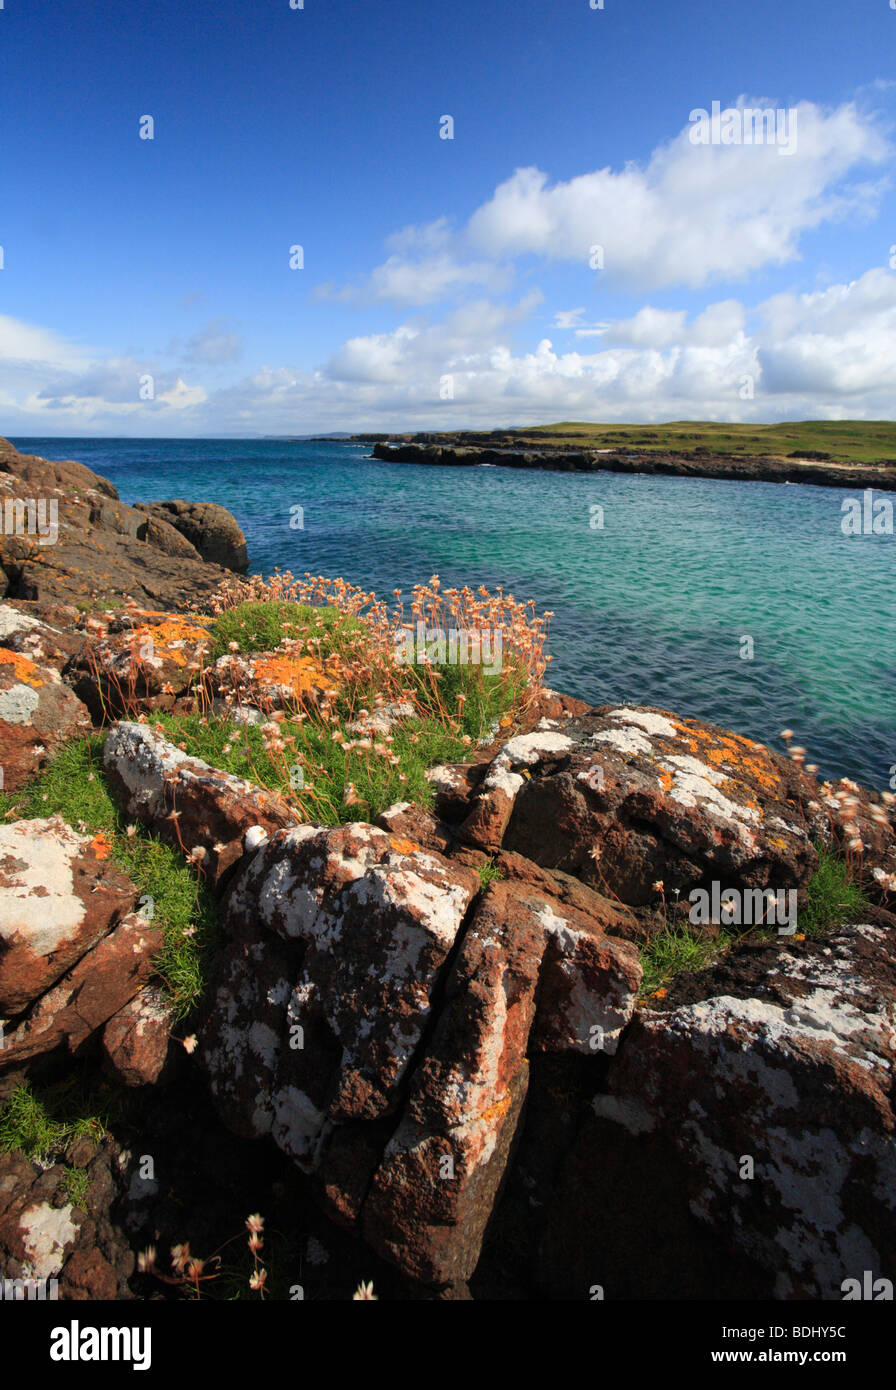 A view across the sea at Port Langamull, Isle of Mull, Scotland. - Stock Image